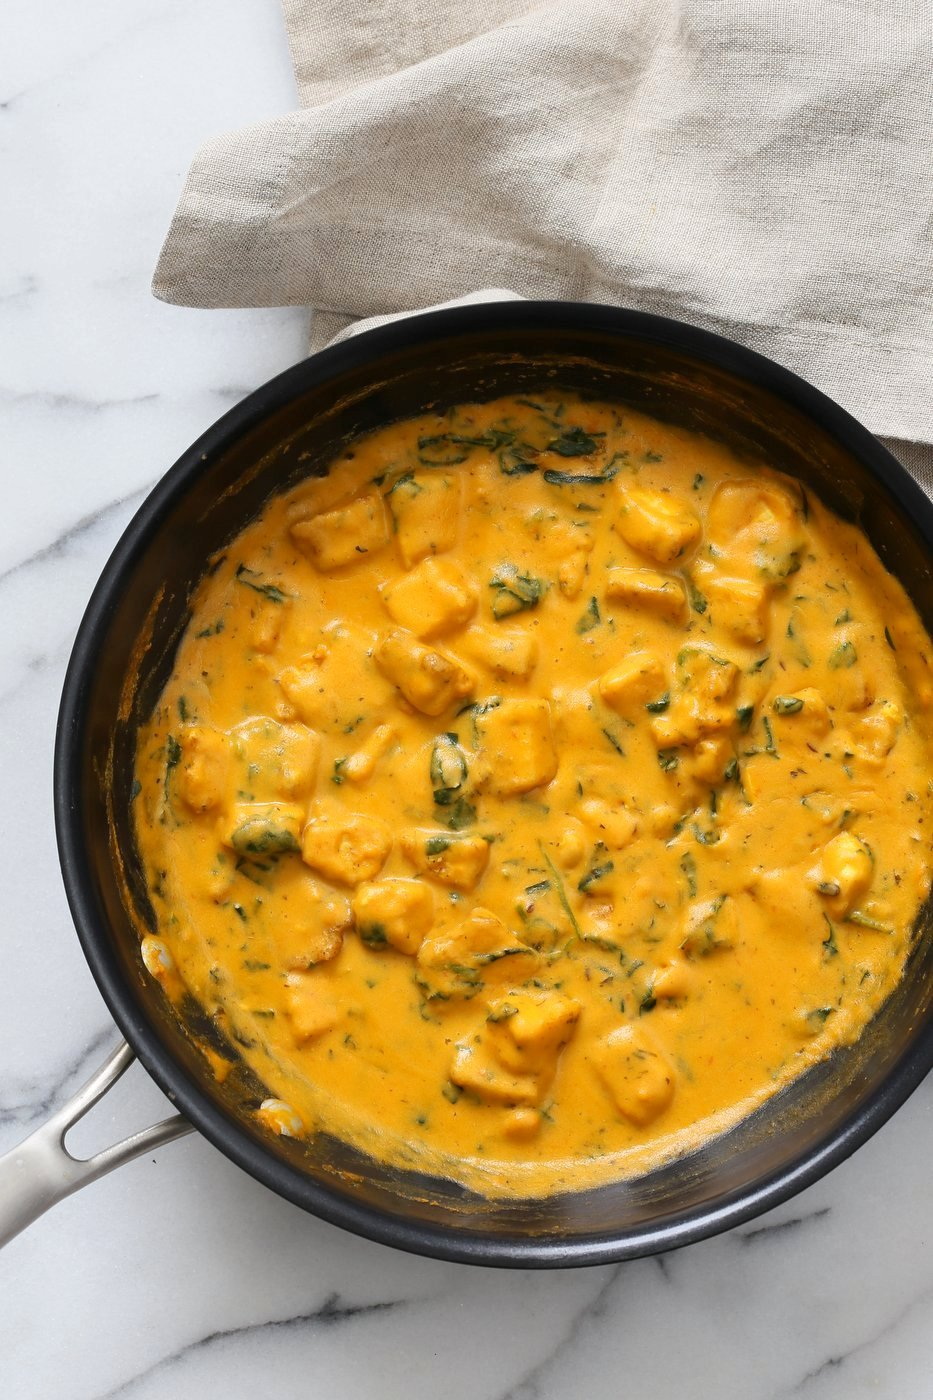 Methi Malai Paneer made vegan with Tofu and cashews. Easy Weeknight Restaurant style Indian main. Serve over Naan or rice. Vegan Gluten-free Recipe. Soy-free option | VeganRicha.com